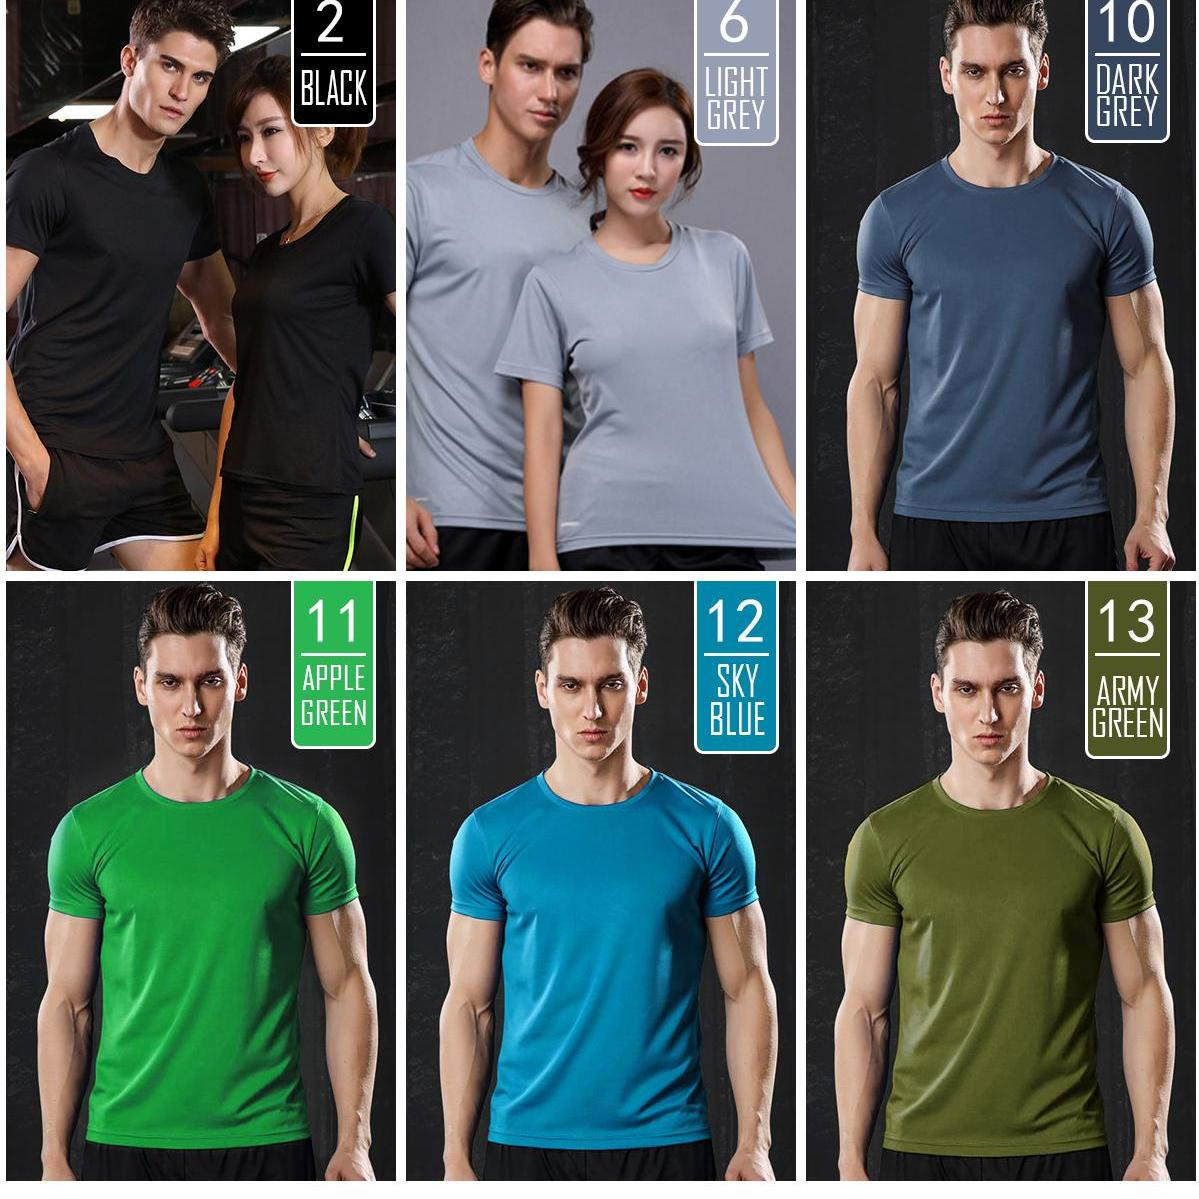 309f023e35a73 Sports Shirts for Men for sale - Sports T-Shirts Online Deals ...